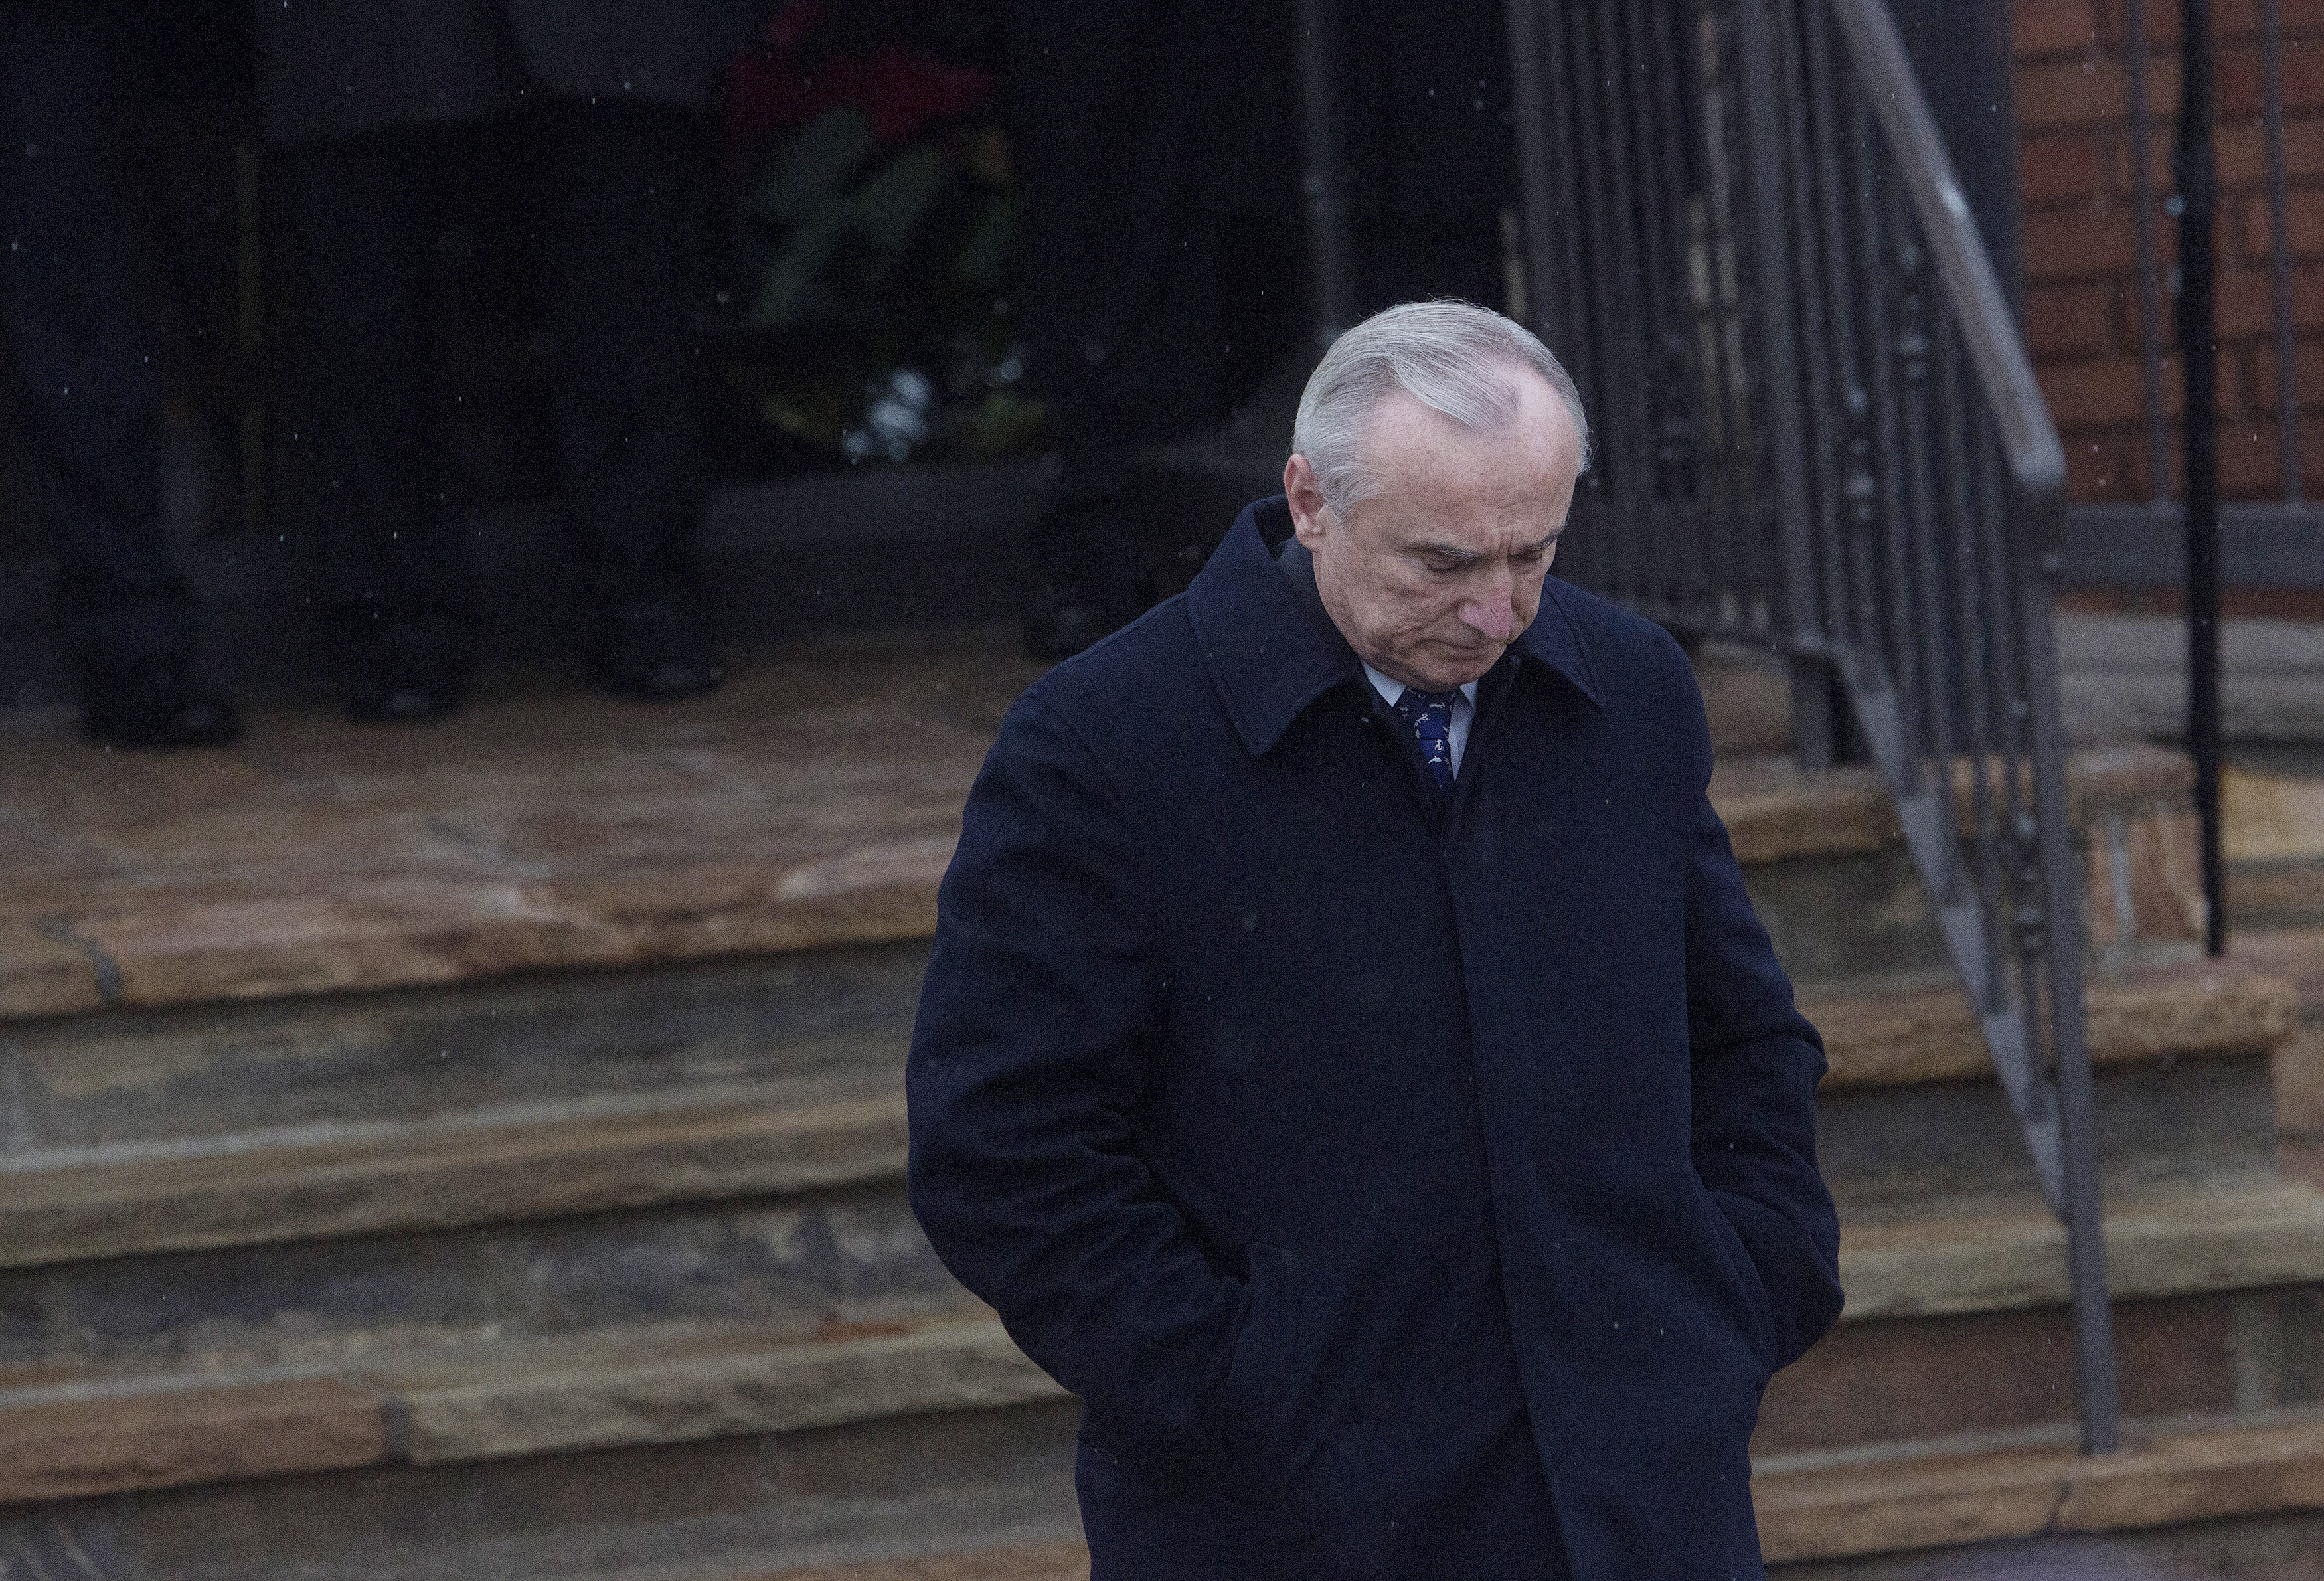 Police Commissioner Bill Bratton today (Photo: Eric Thayer/Getty Images).